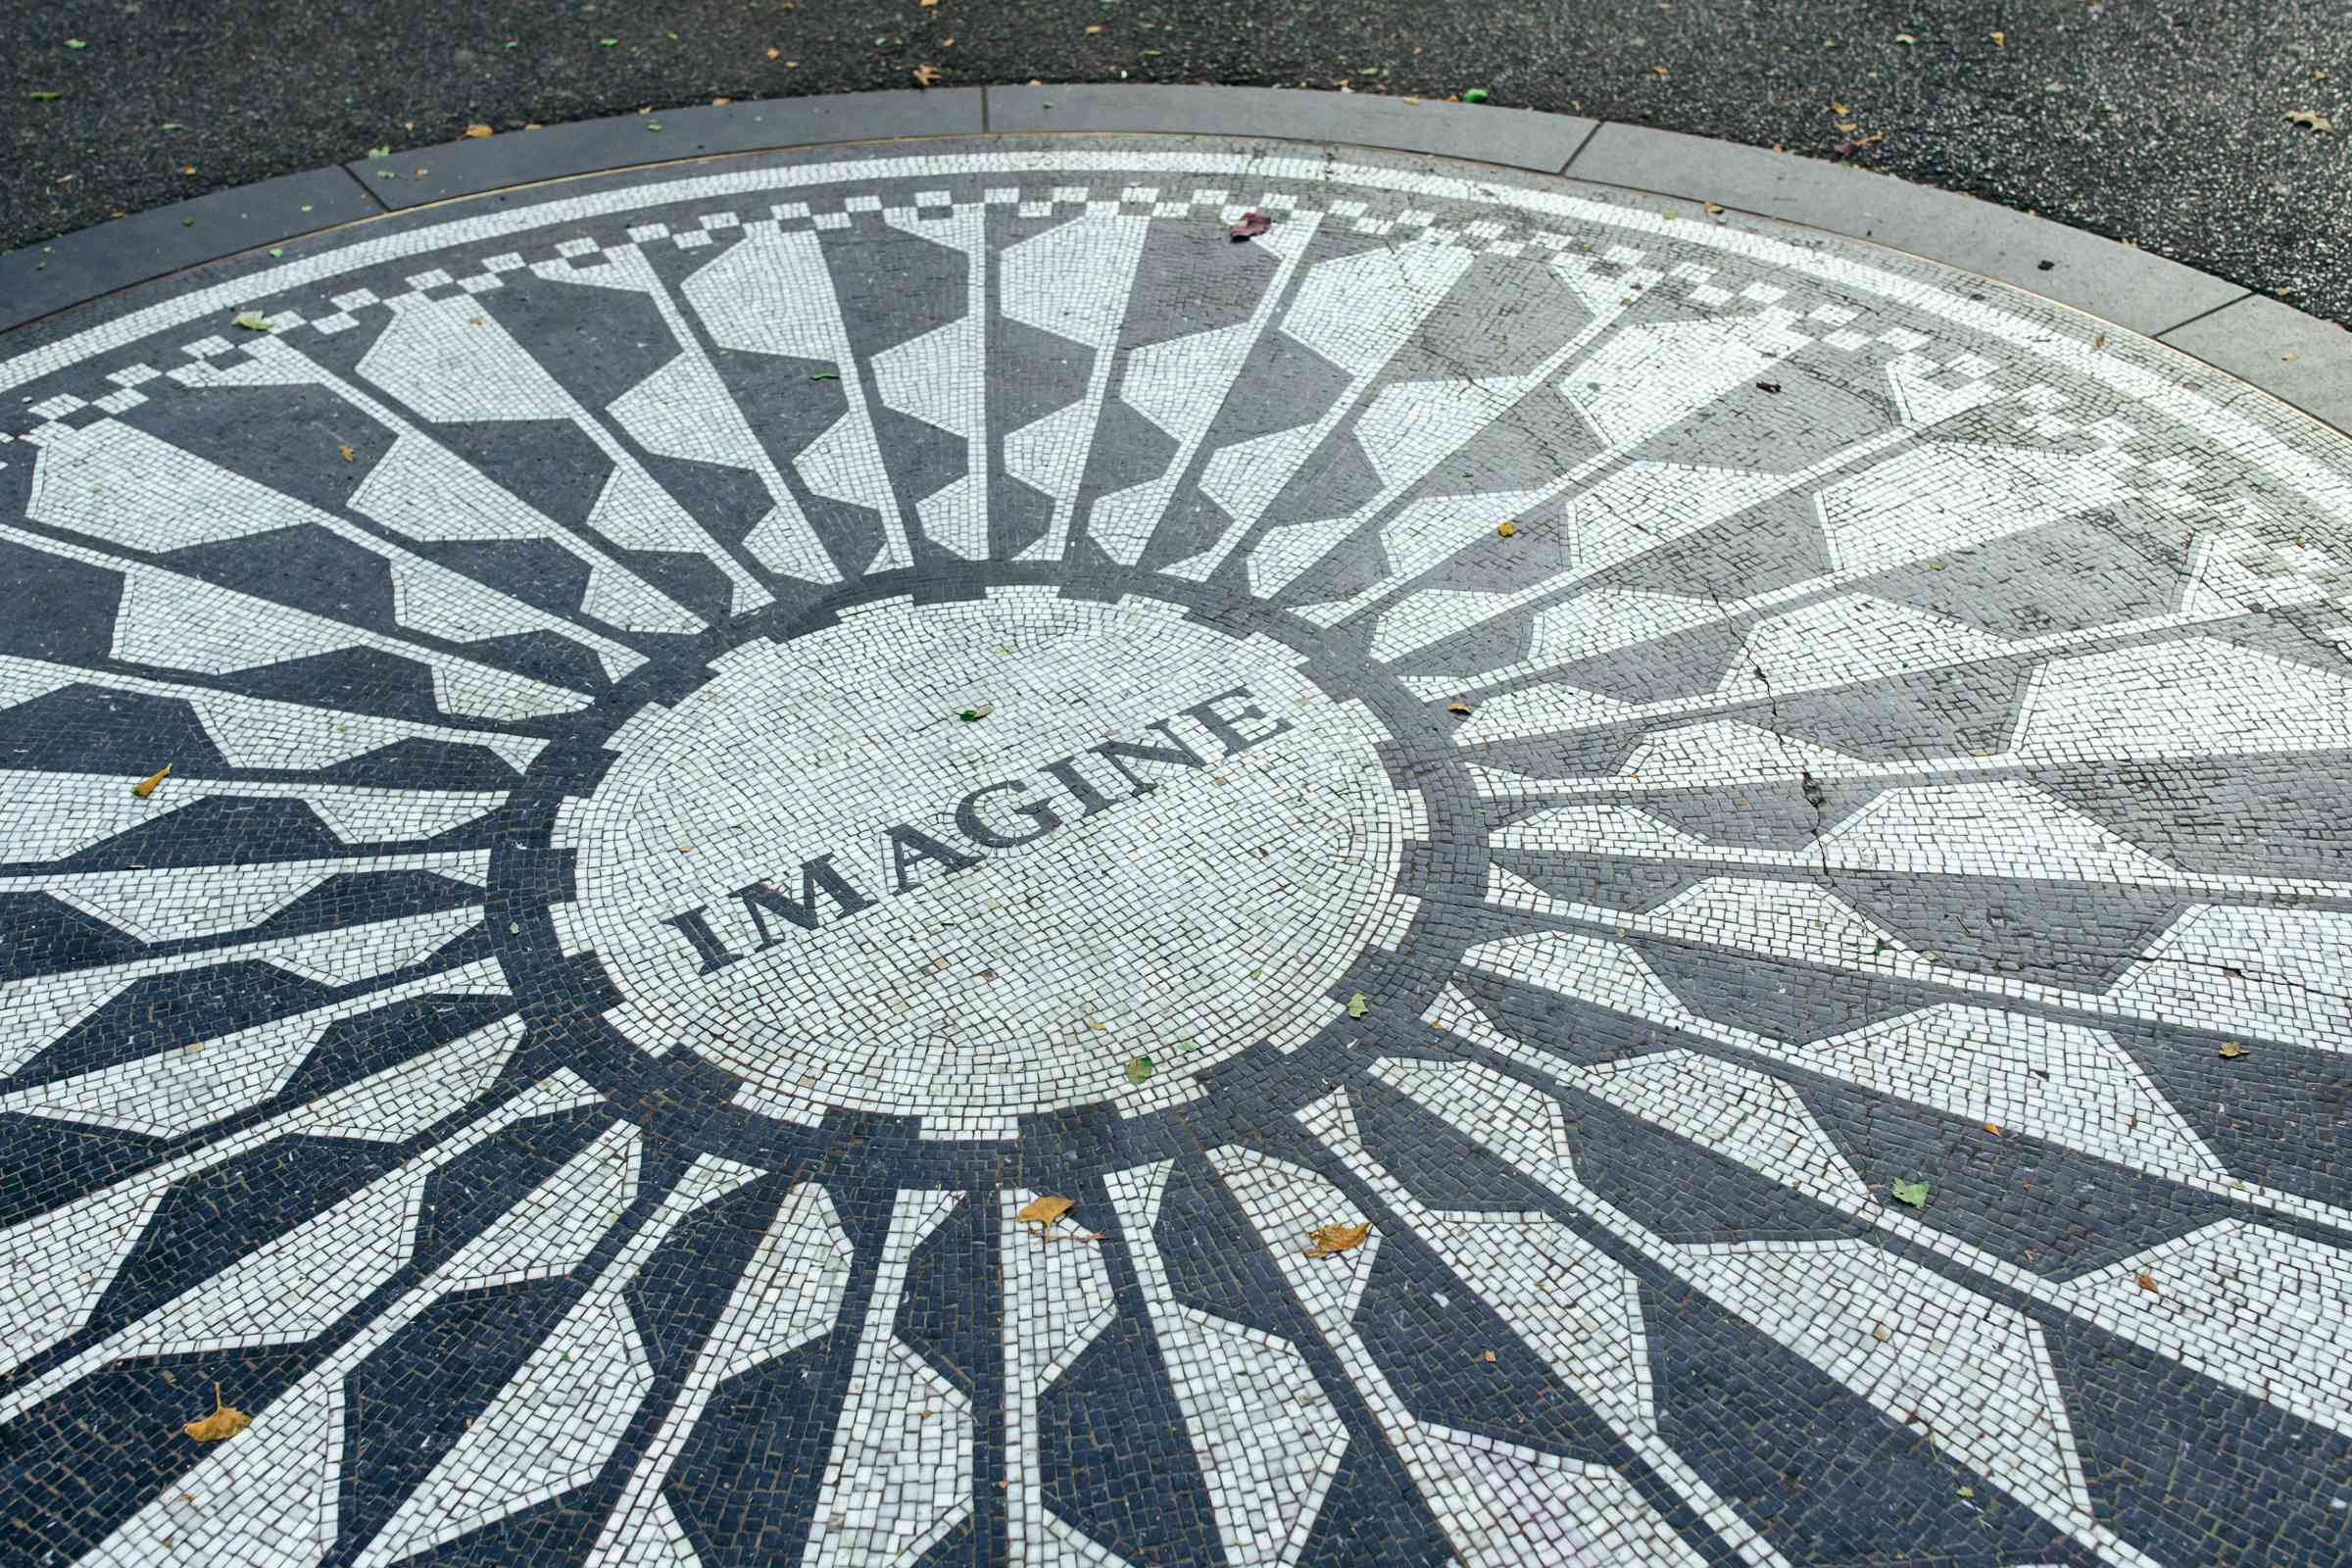 Strawberry Fields en Central Park, NYC